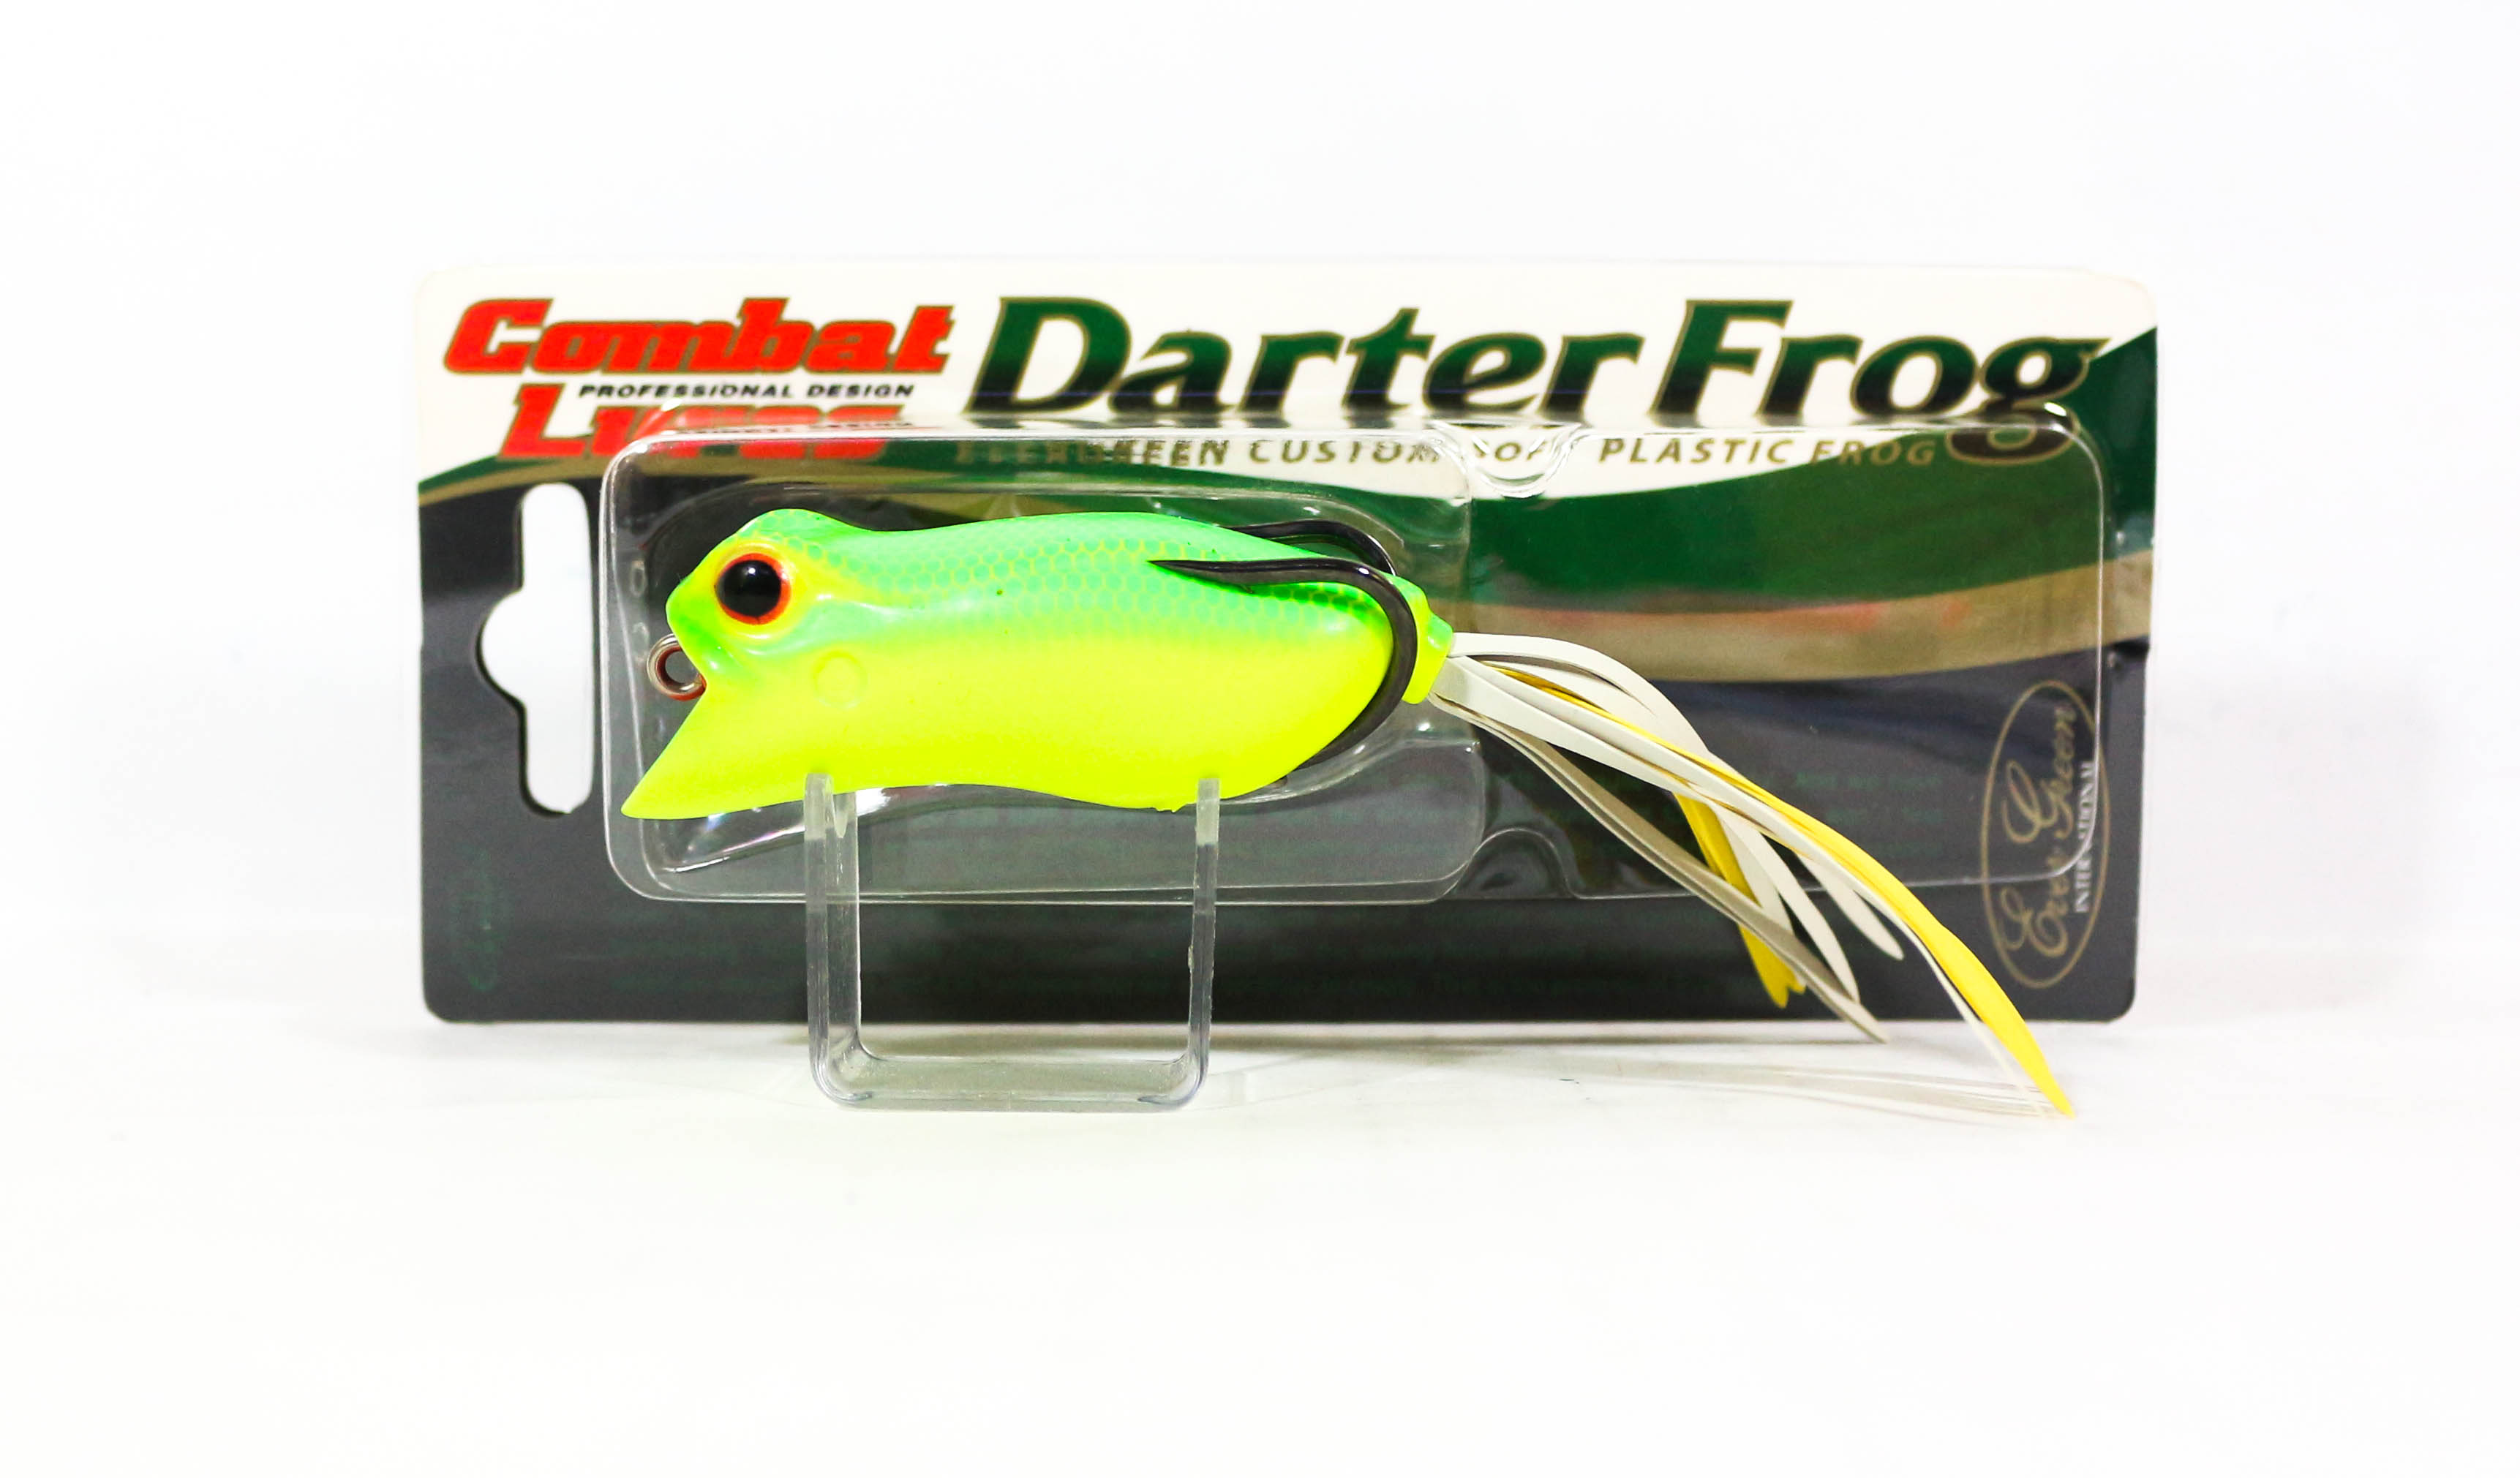 Sale Evergreen Darter Frog Soft Plastic Floating Lure 205 (9828)